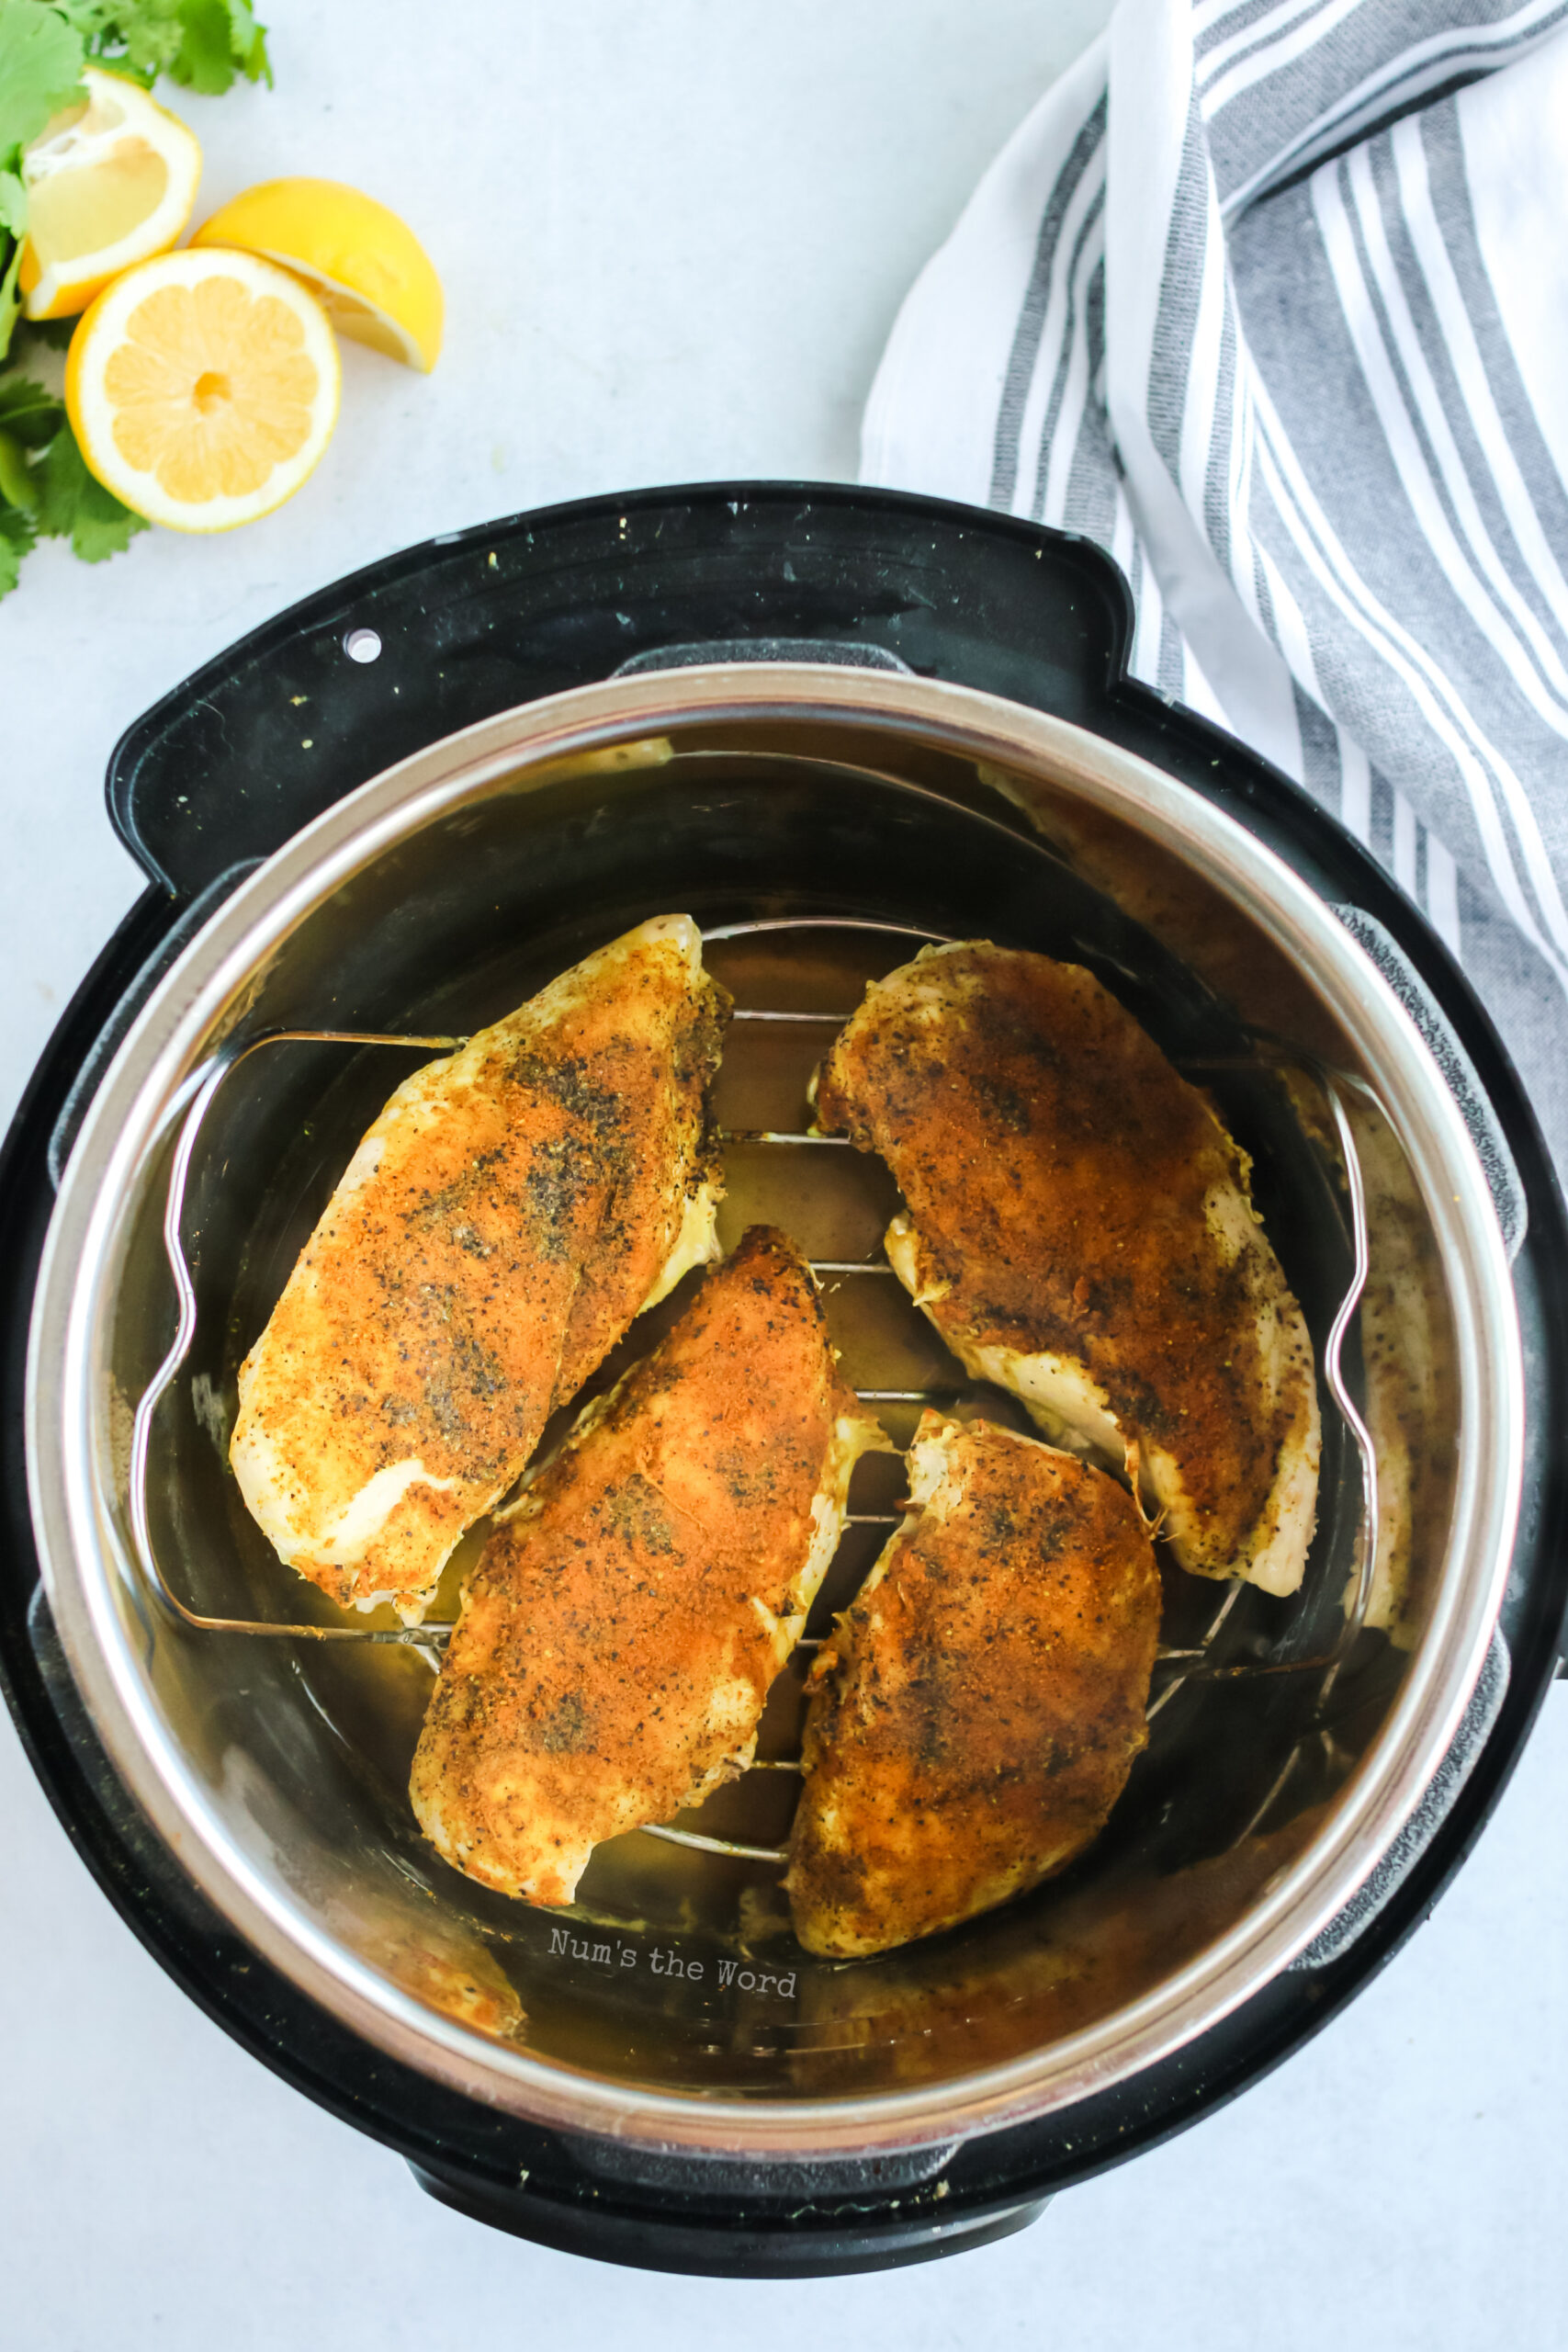 seasoned and cooked chicken inside instant pot